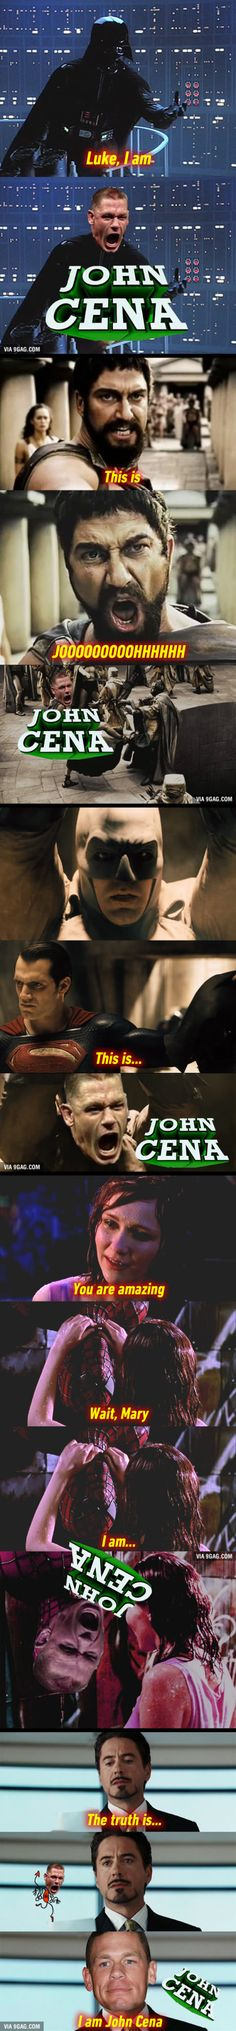 5 Epic Movie Scenes Would Have Gone Terribly Wrong If Their True Identity Is... JOHN CENA!